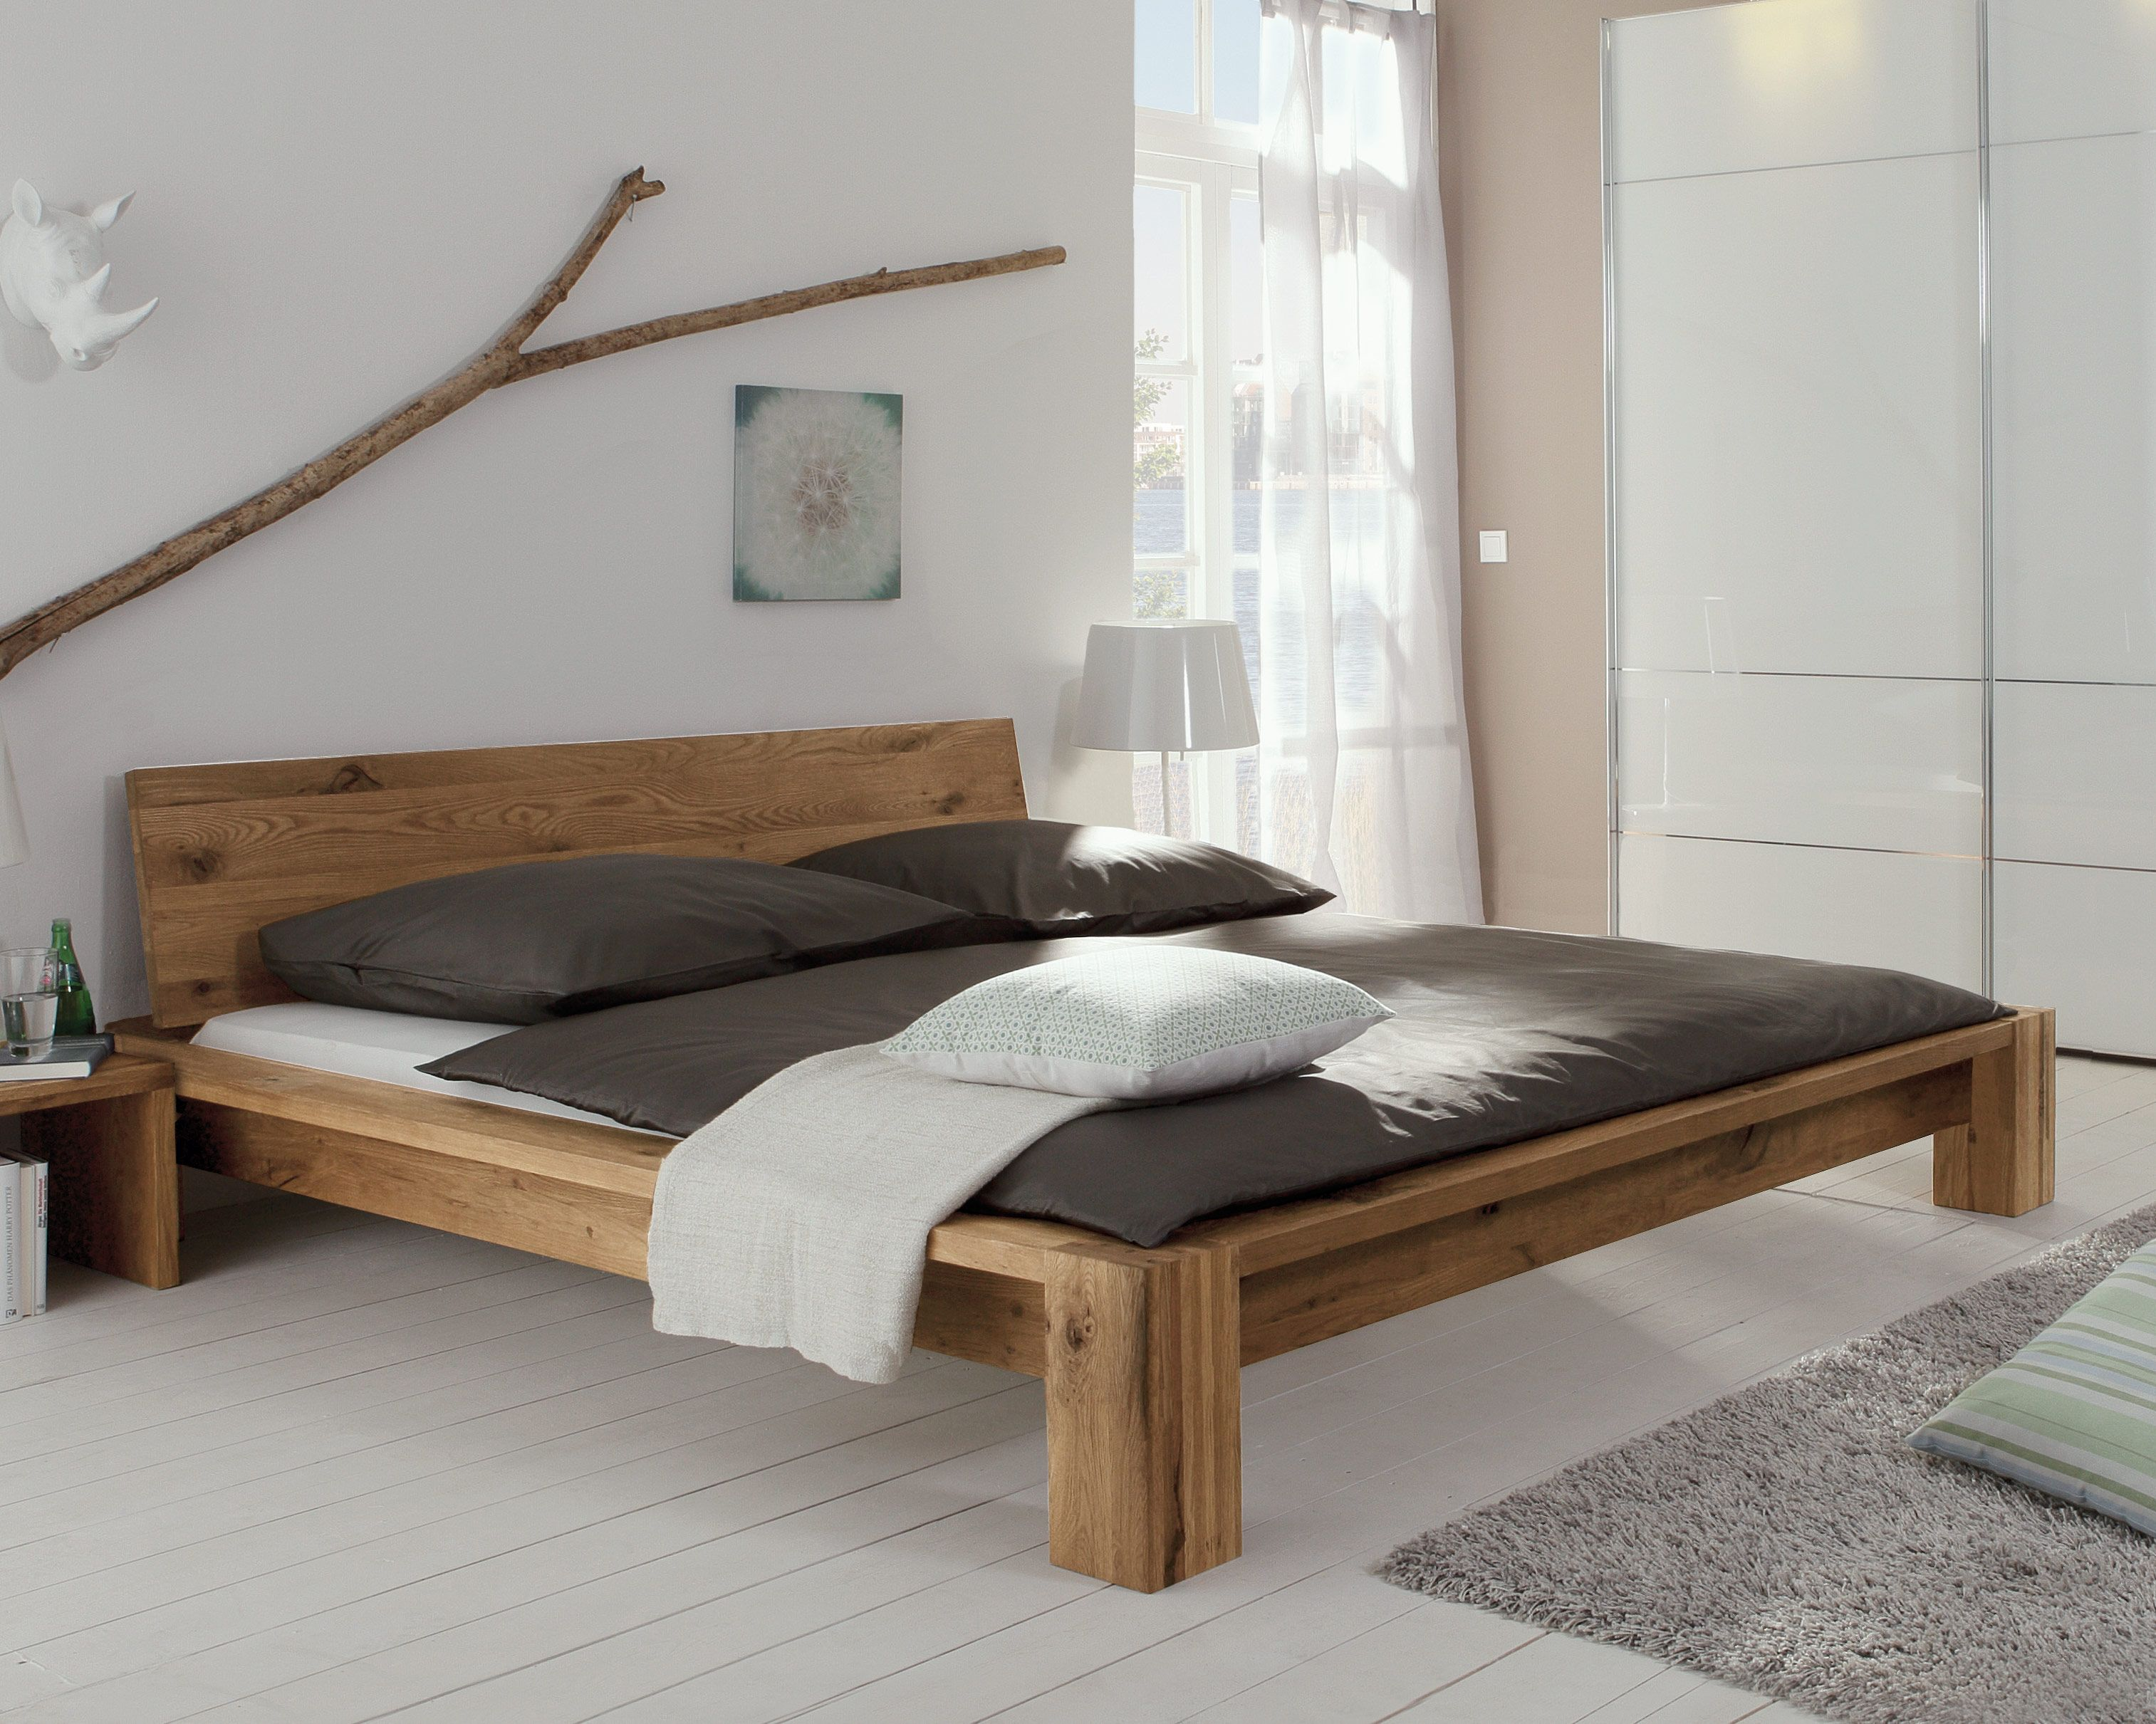 Schlafzimmer Holz Eiche Bett Quotperugia Quot In 2019 Massivholz Welt Bed Wood